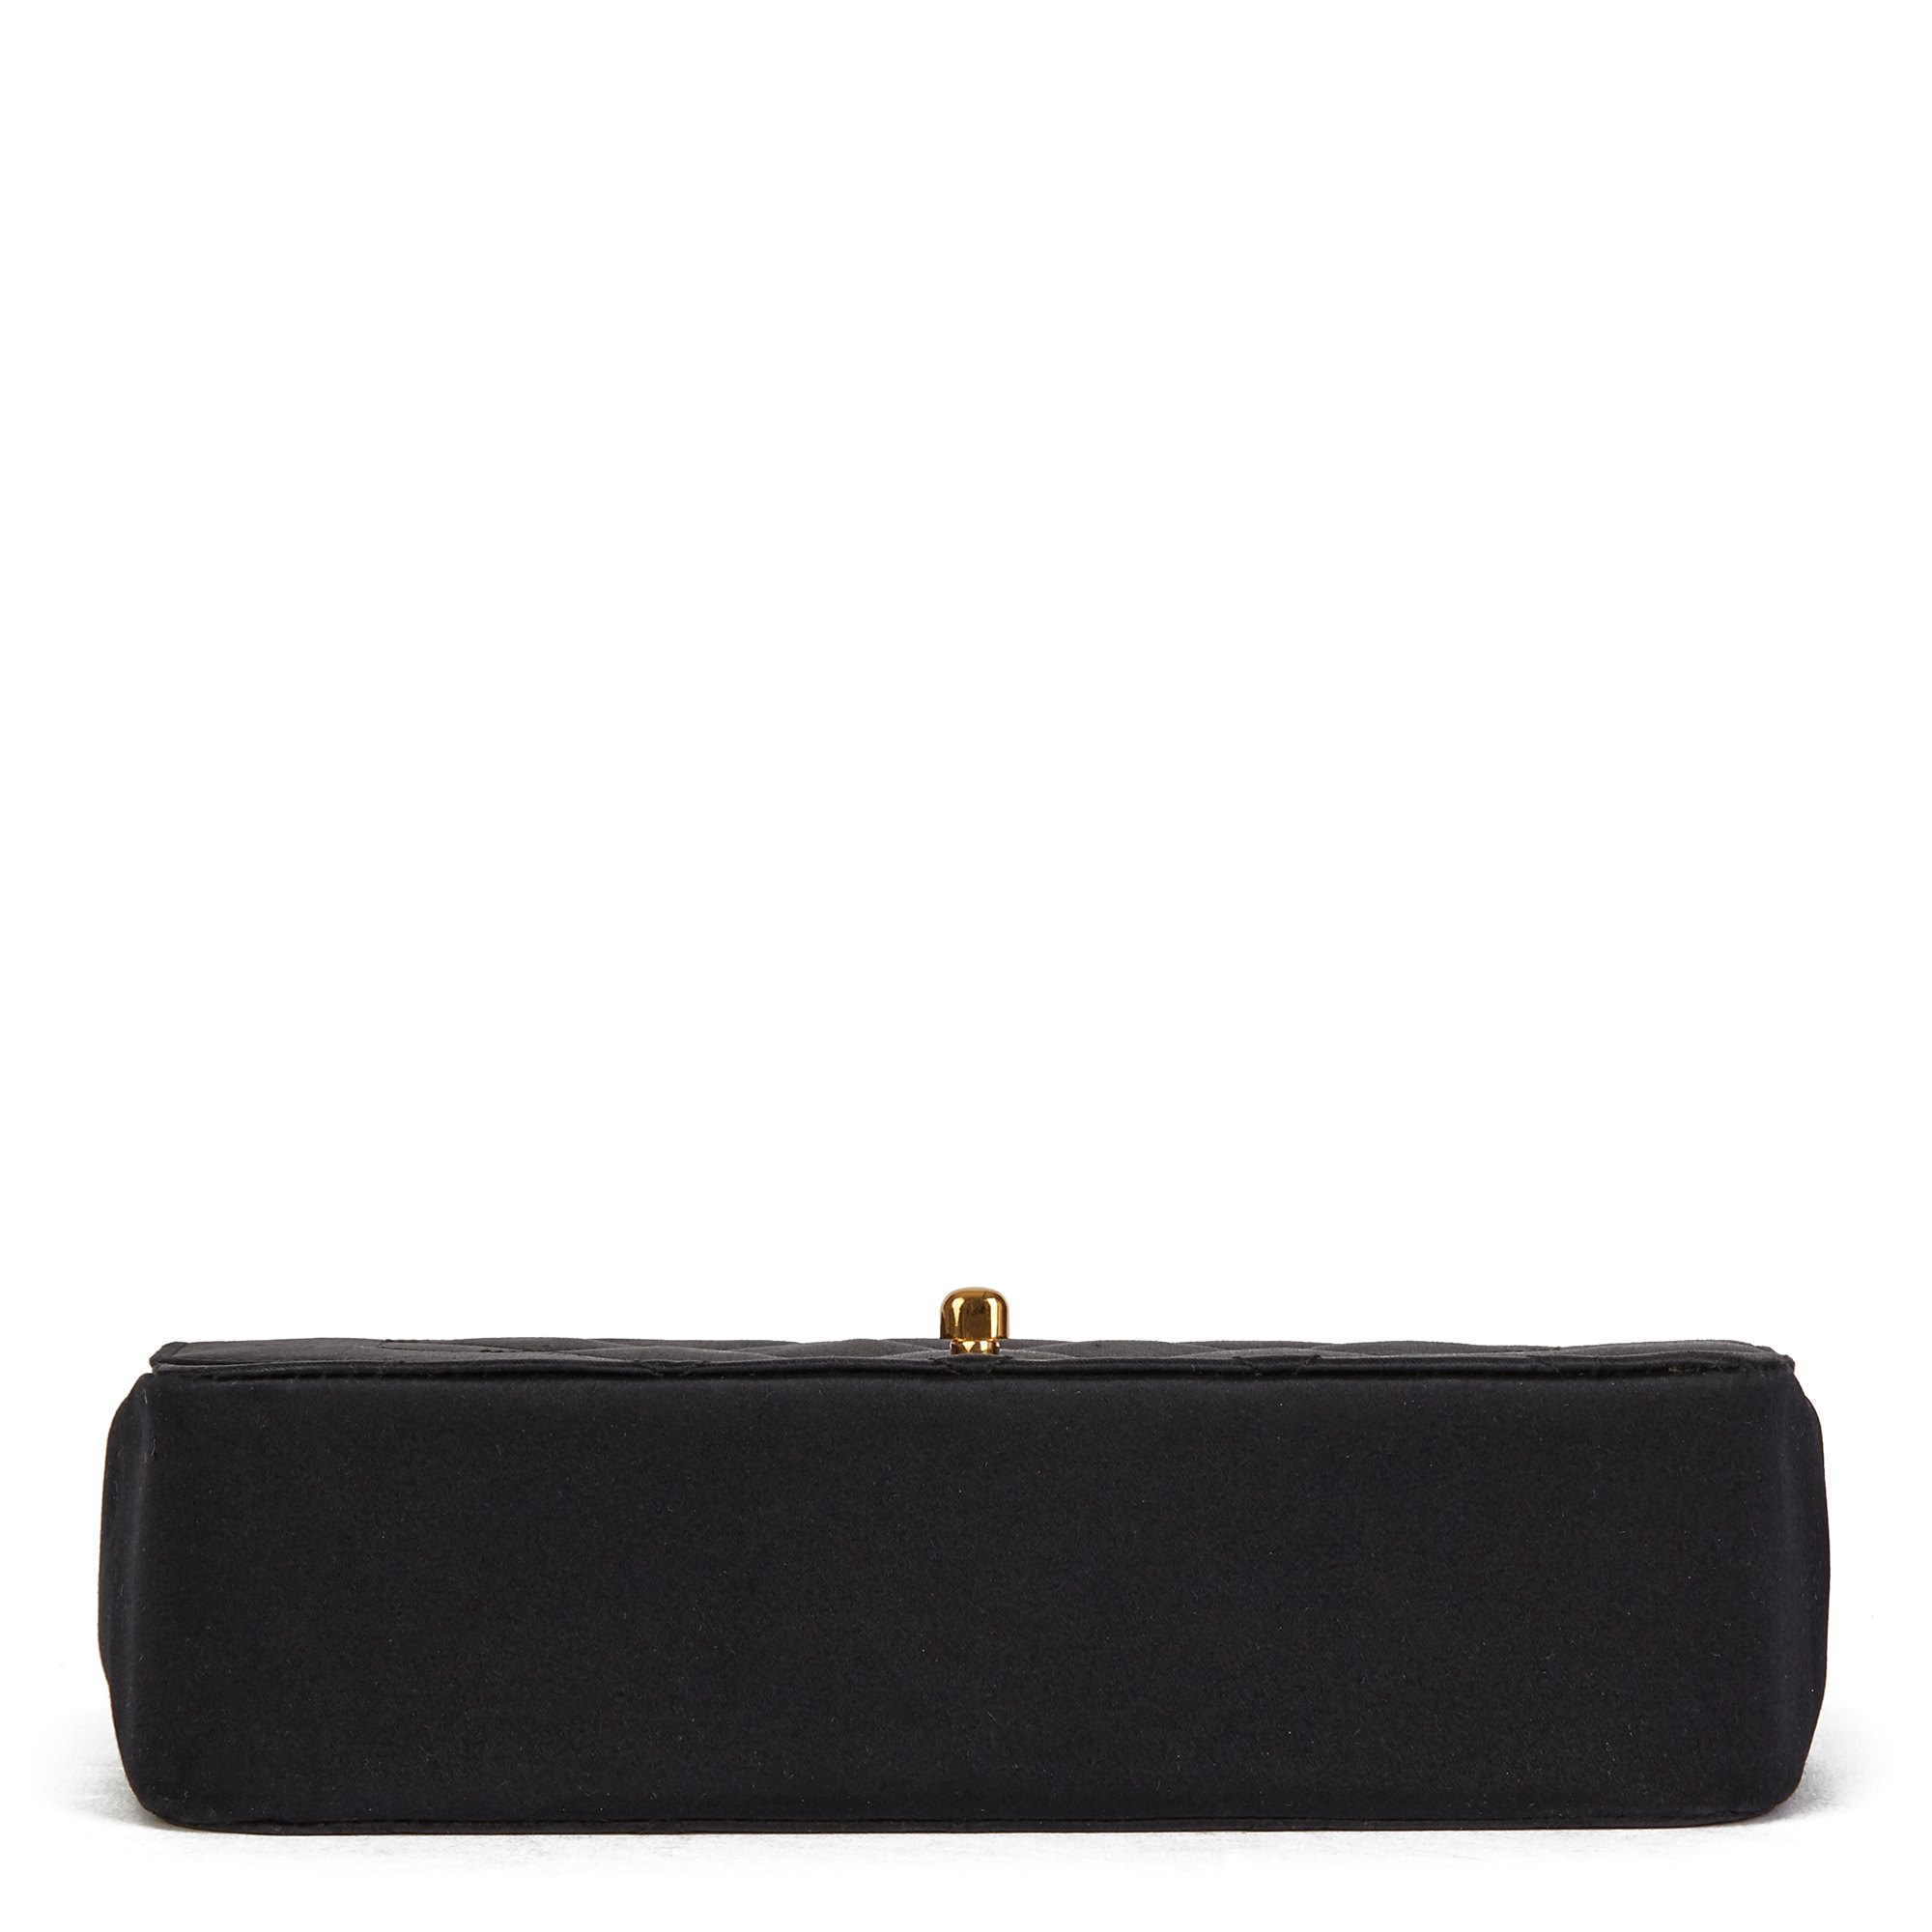 Chanel Black Quilted Satin Vintage Mini Diana Classic Single Flap Bag